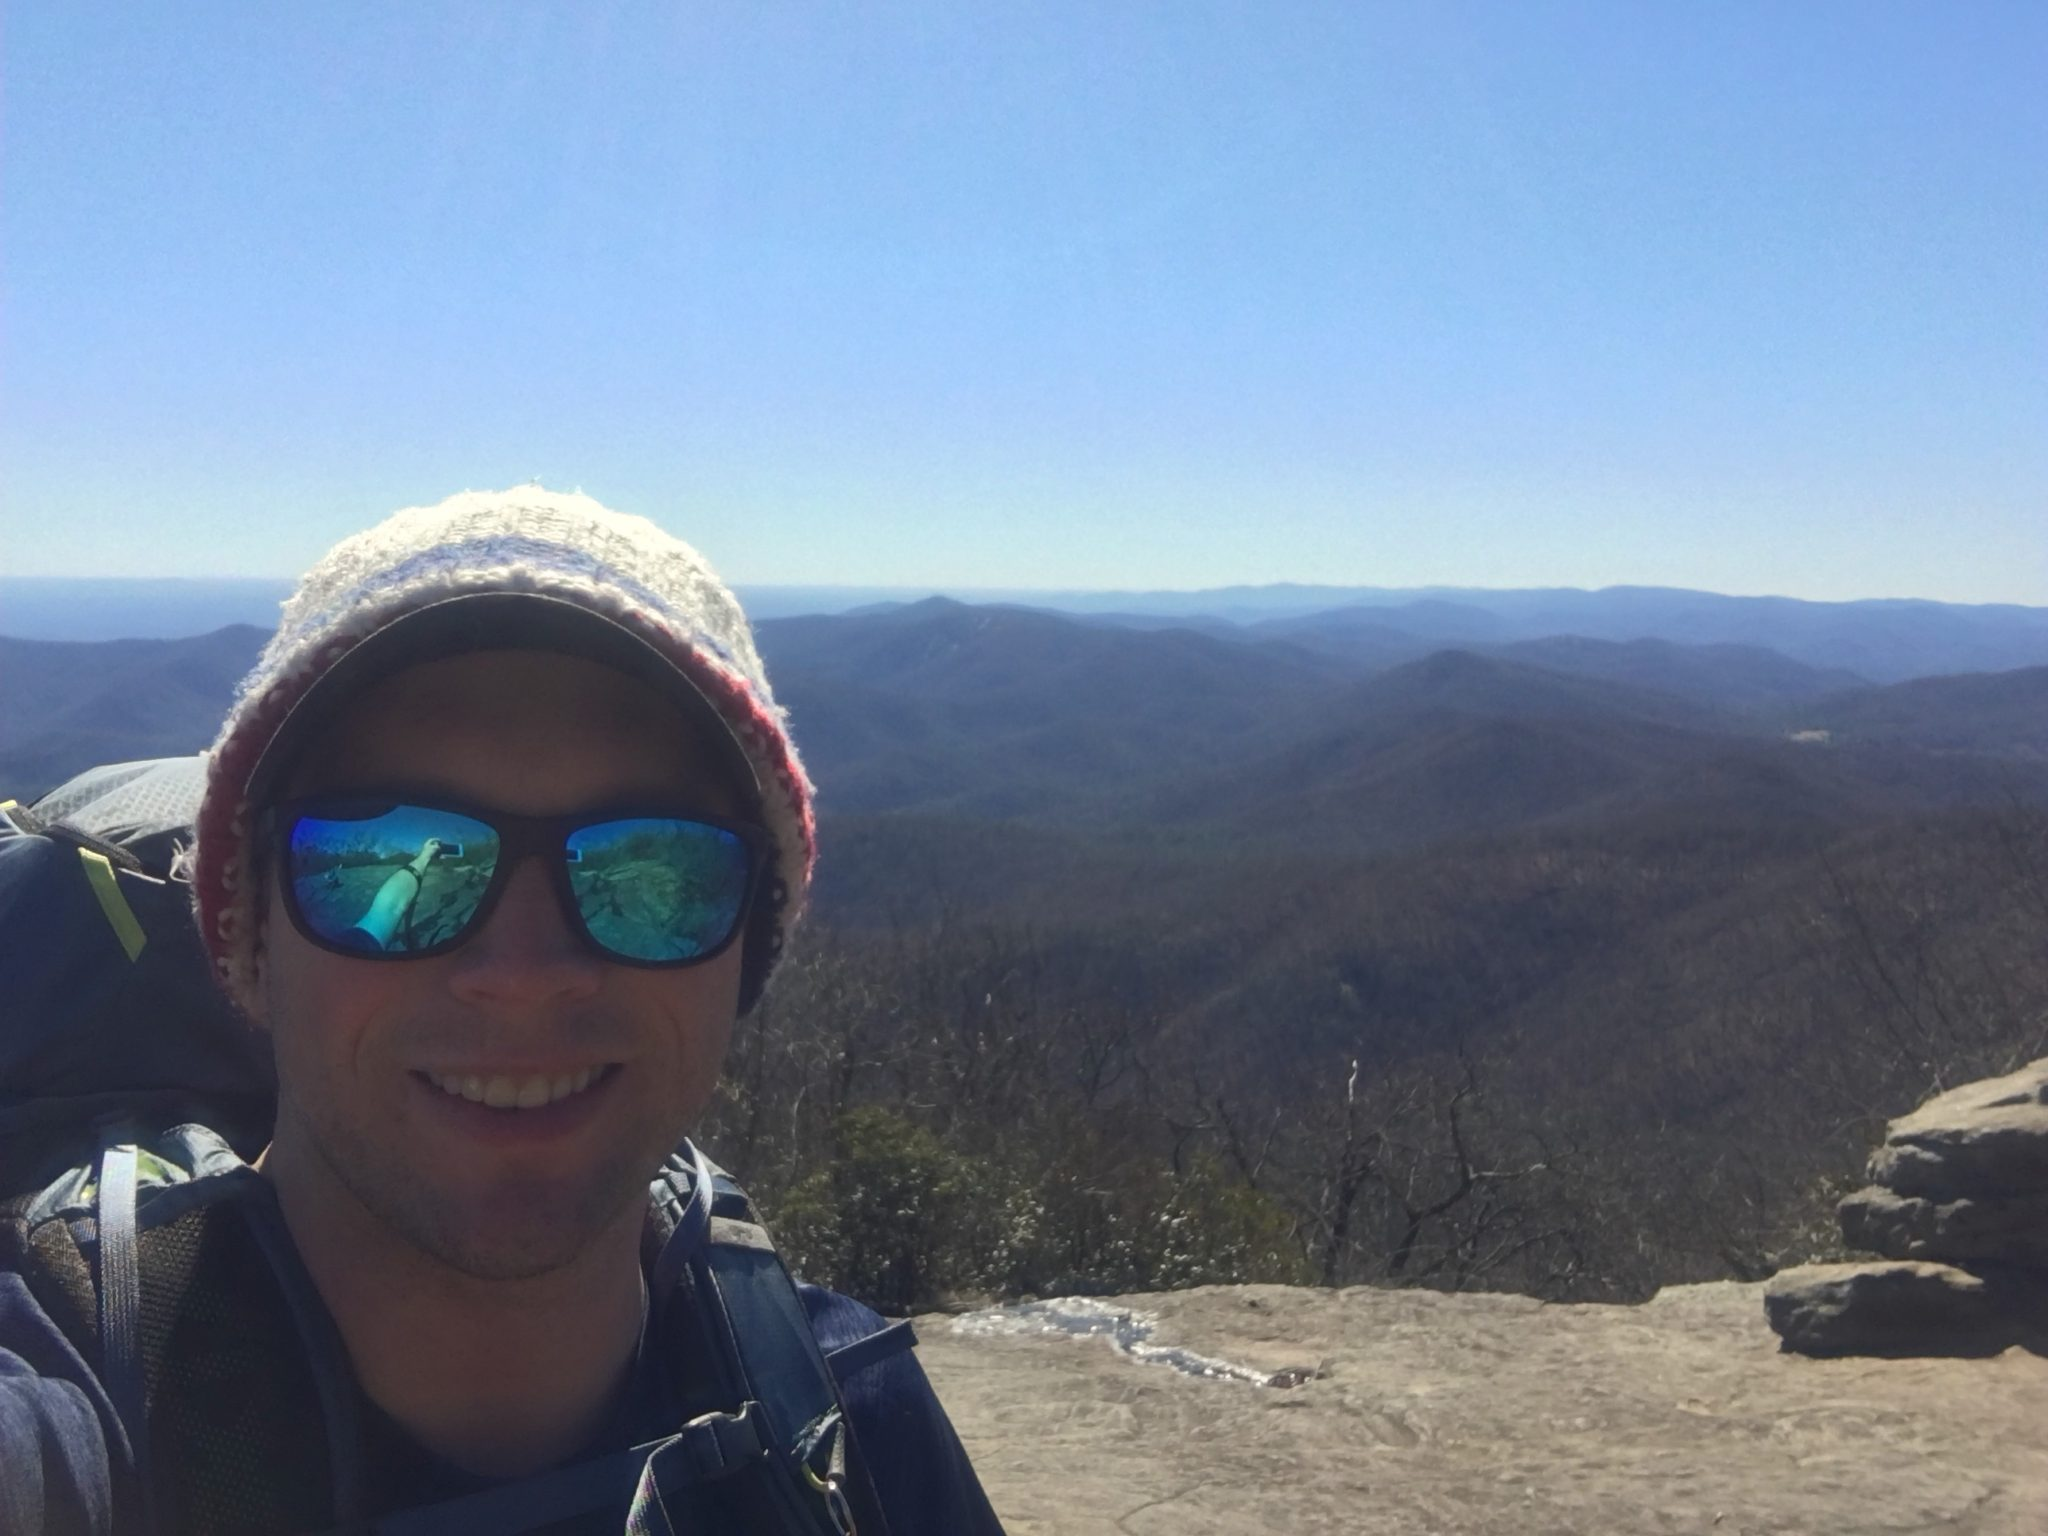 Smiling through the pain on top of Blood Mountain